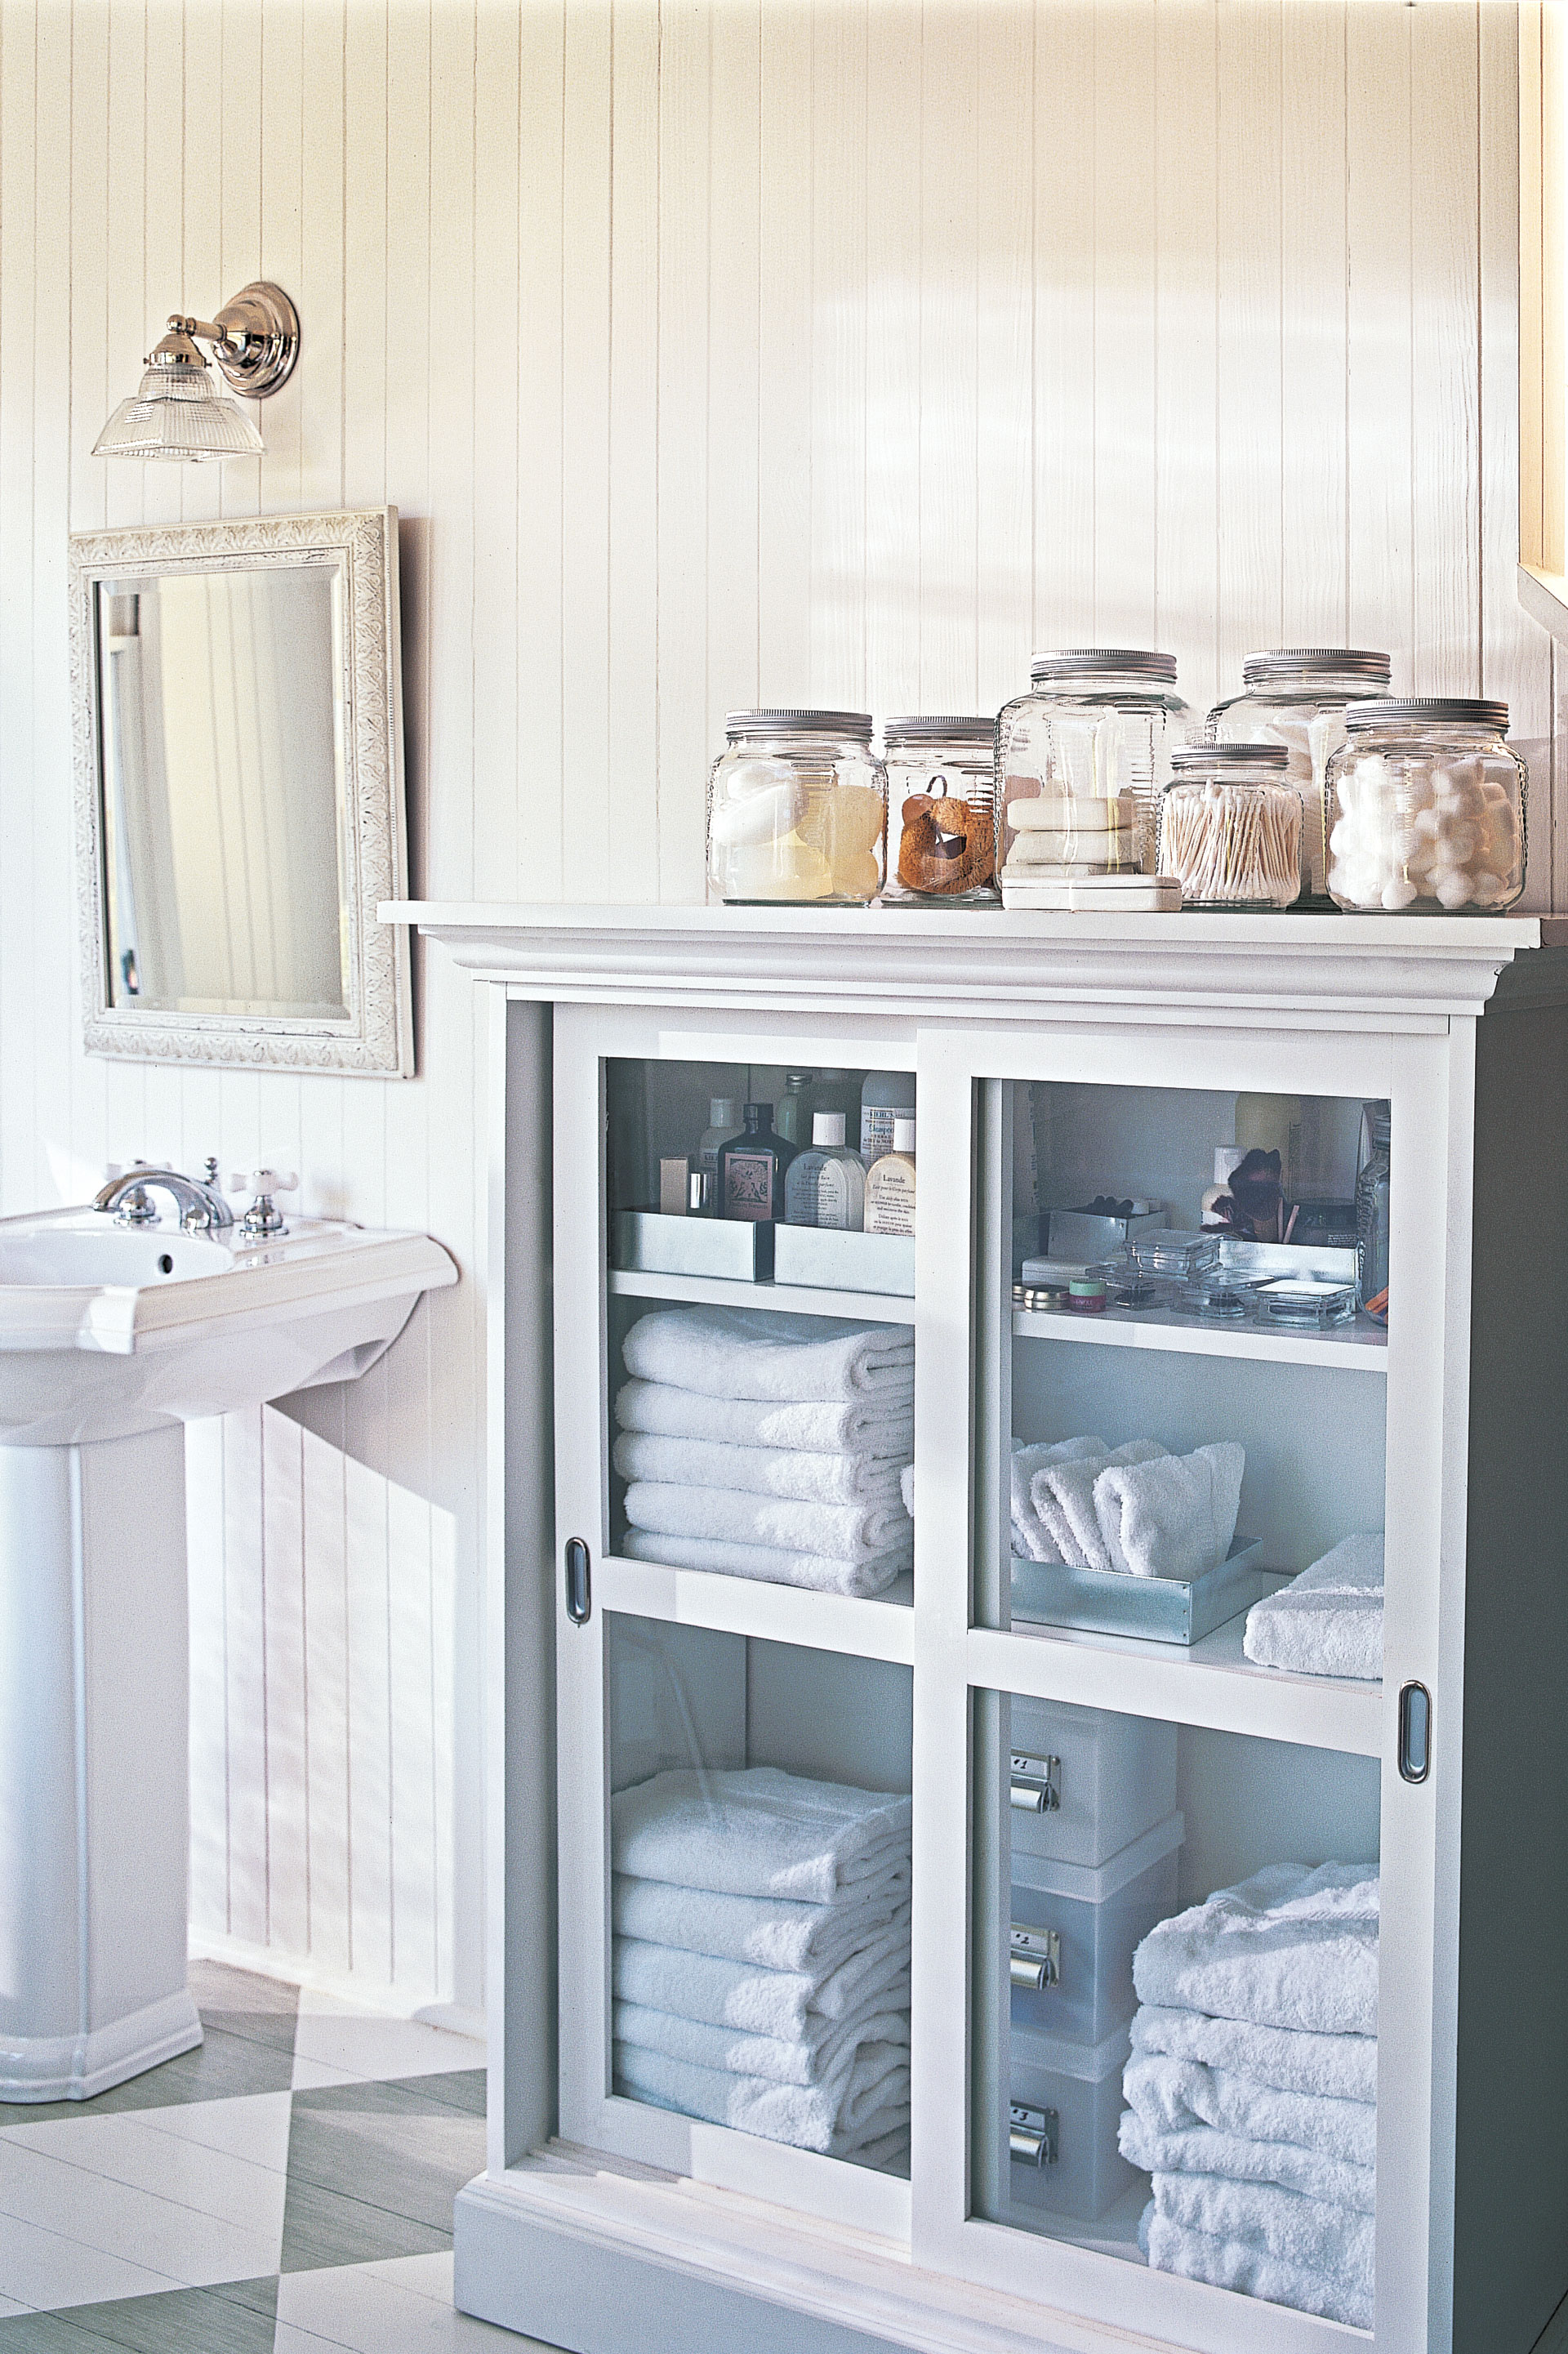 17 bathroom organization ideas best bathroom organizers to try - Small Bathroom Cabinets Storage